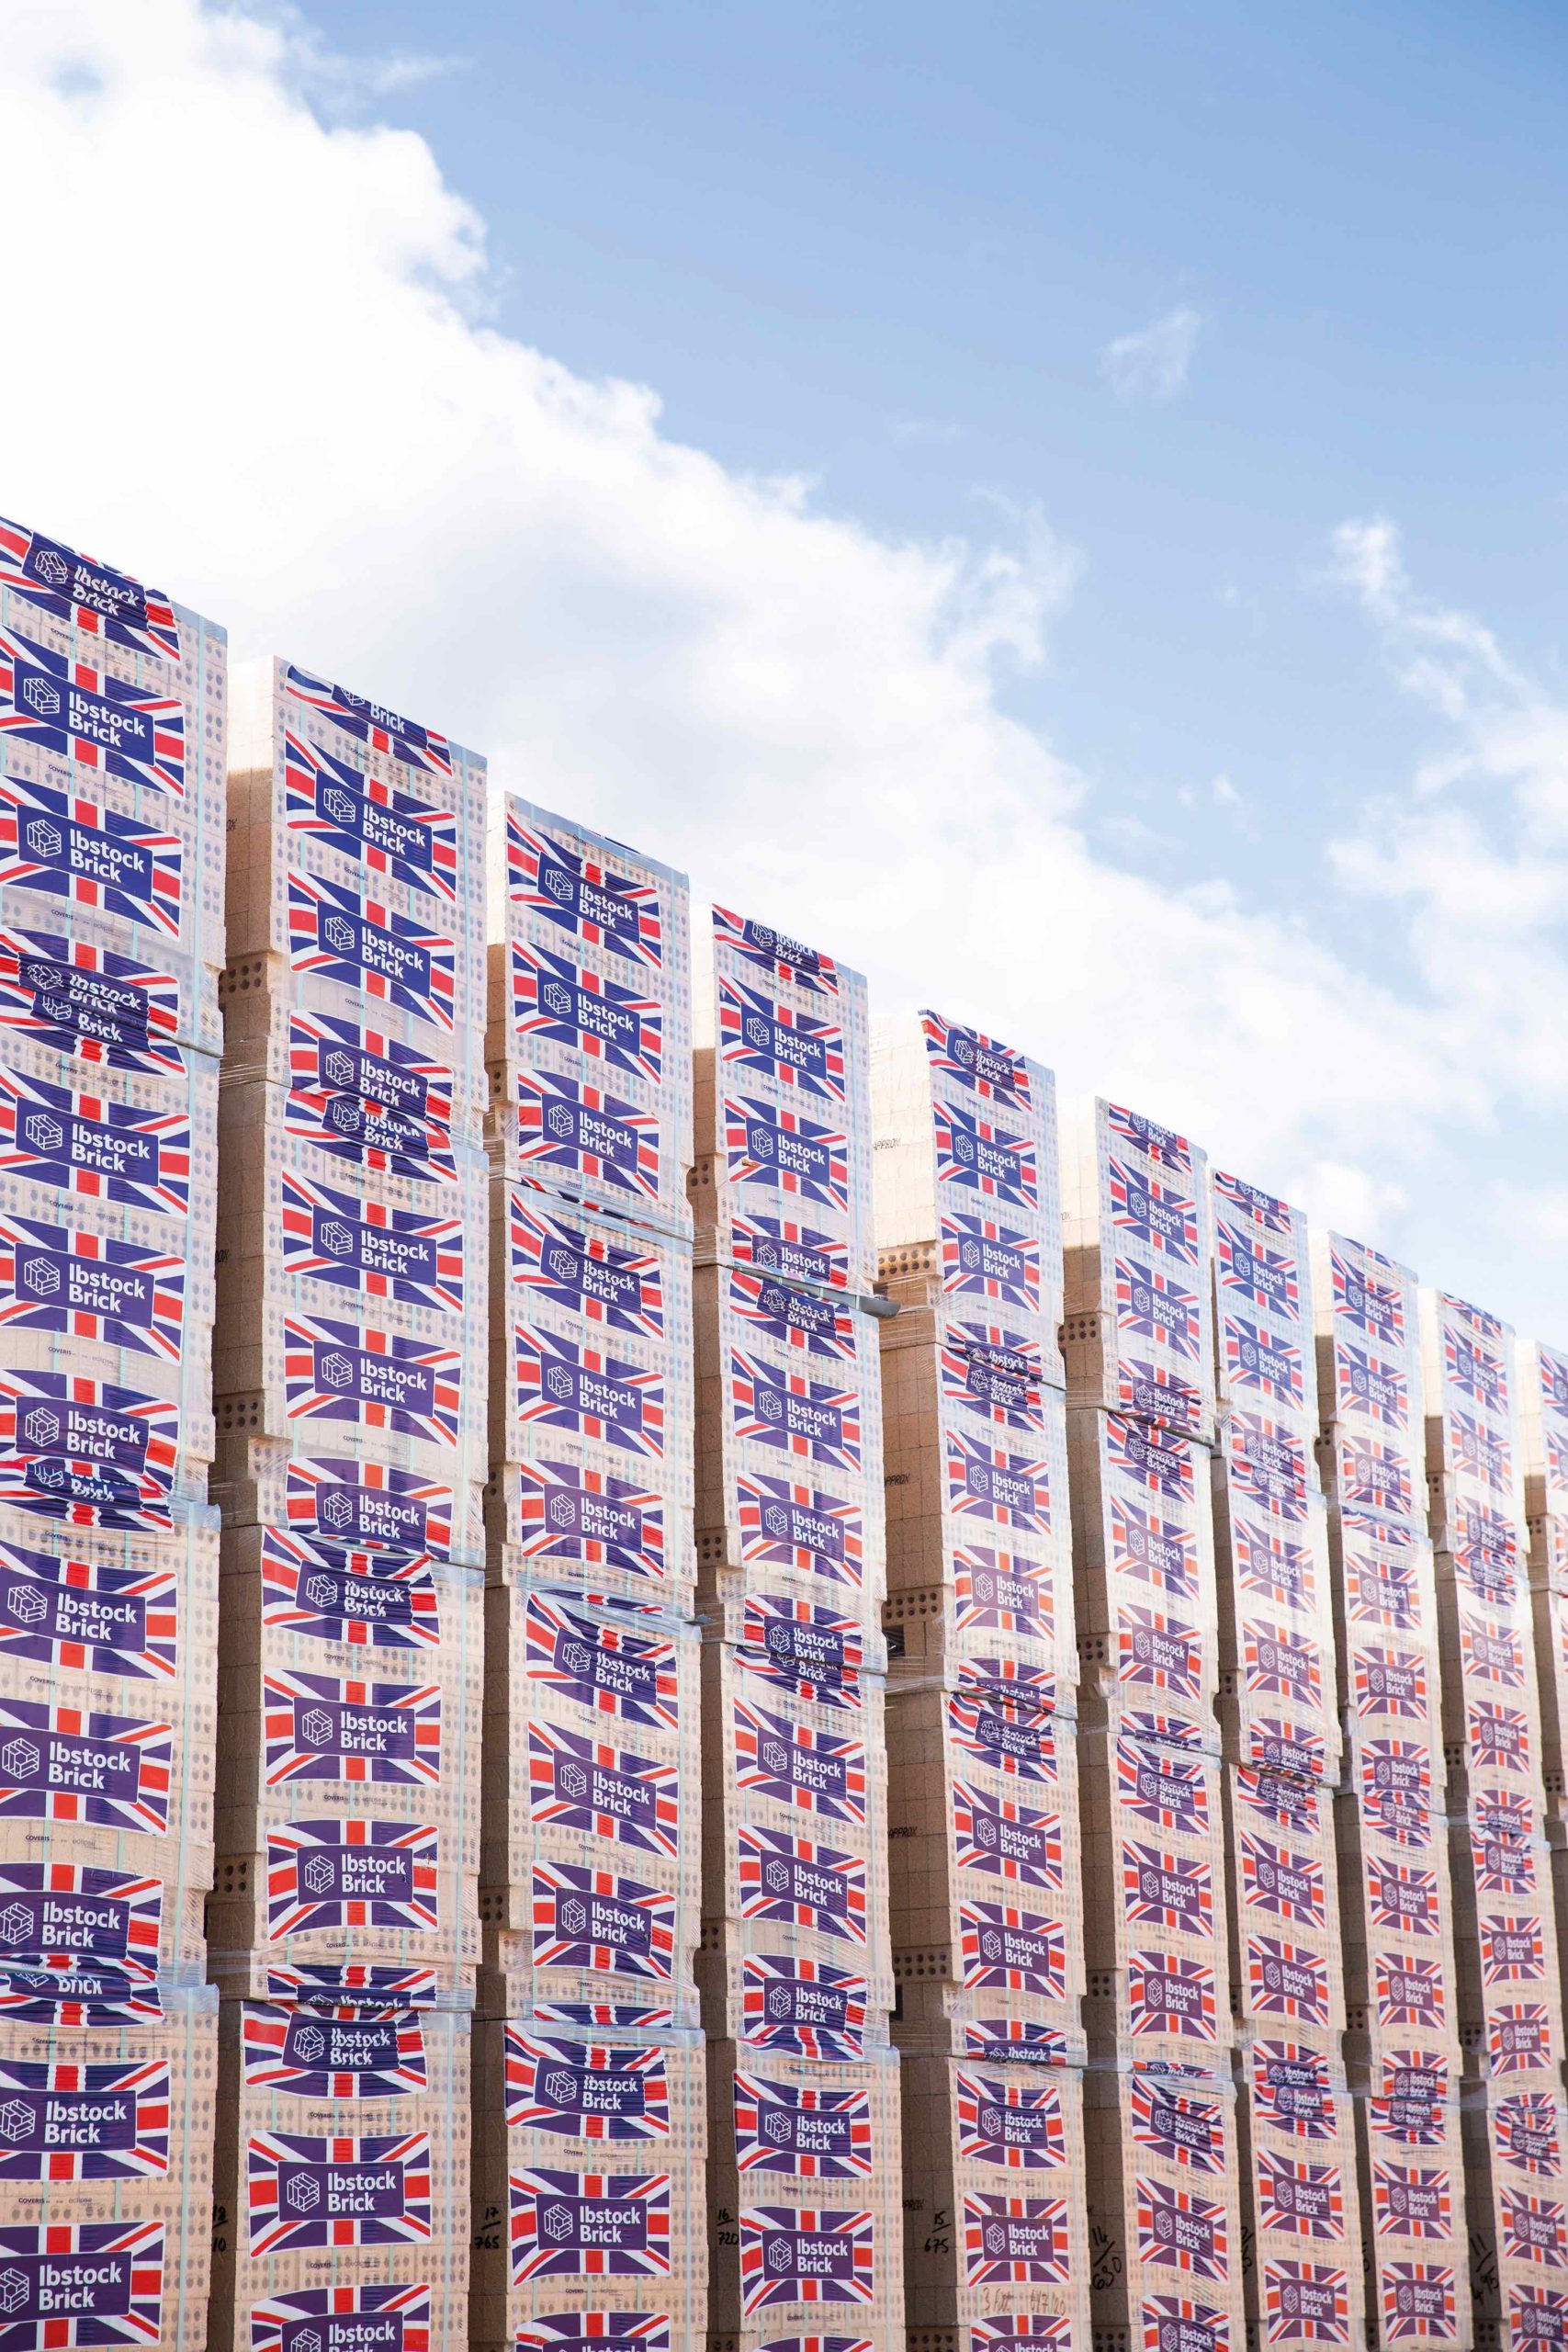 Ibstock commitment targets 40% reduction in plastic use by 2025